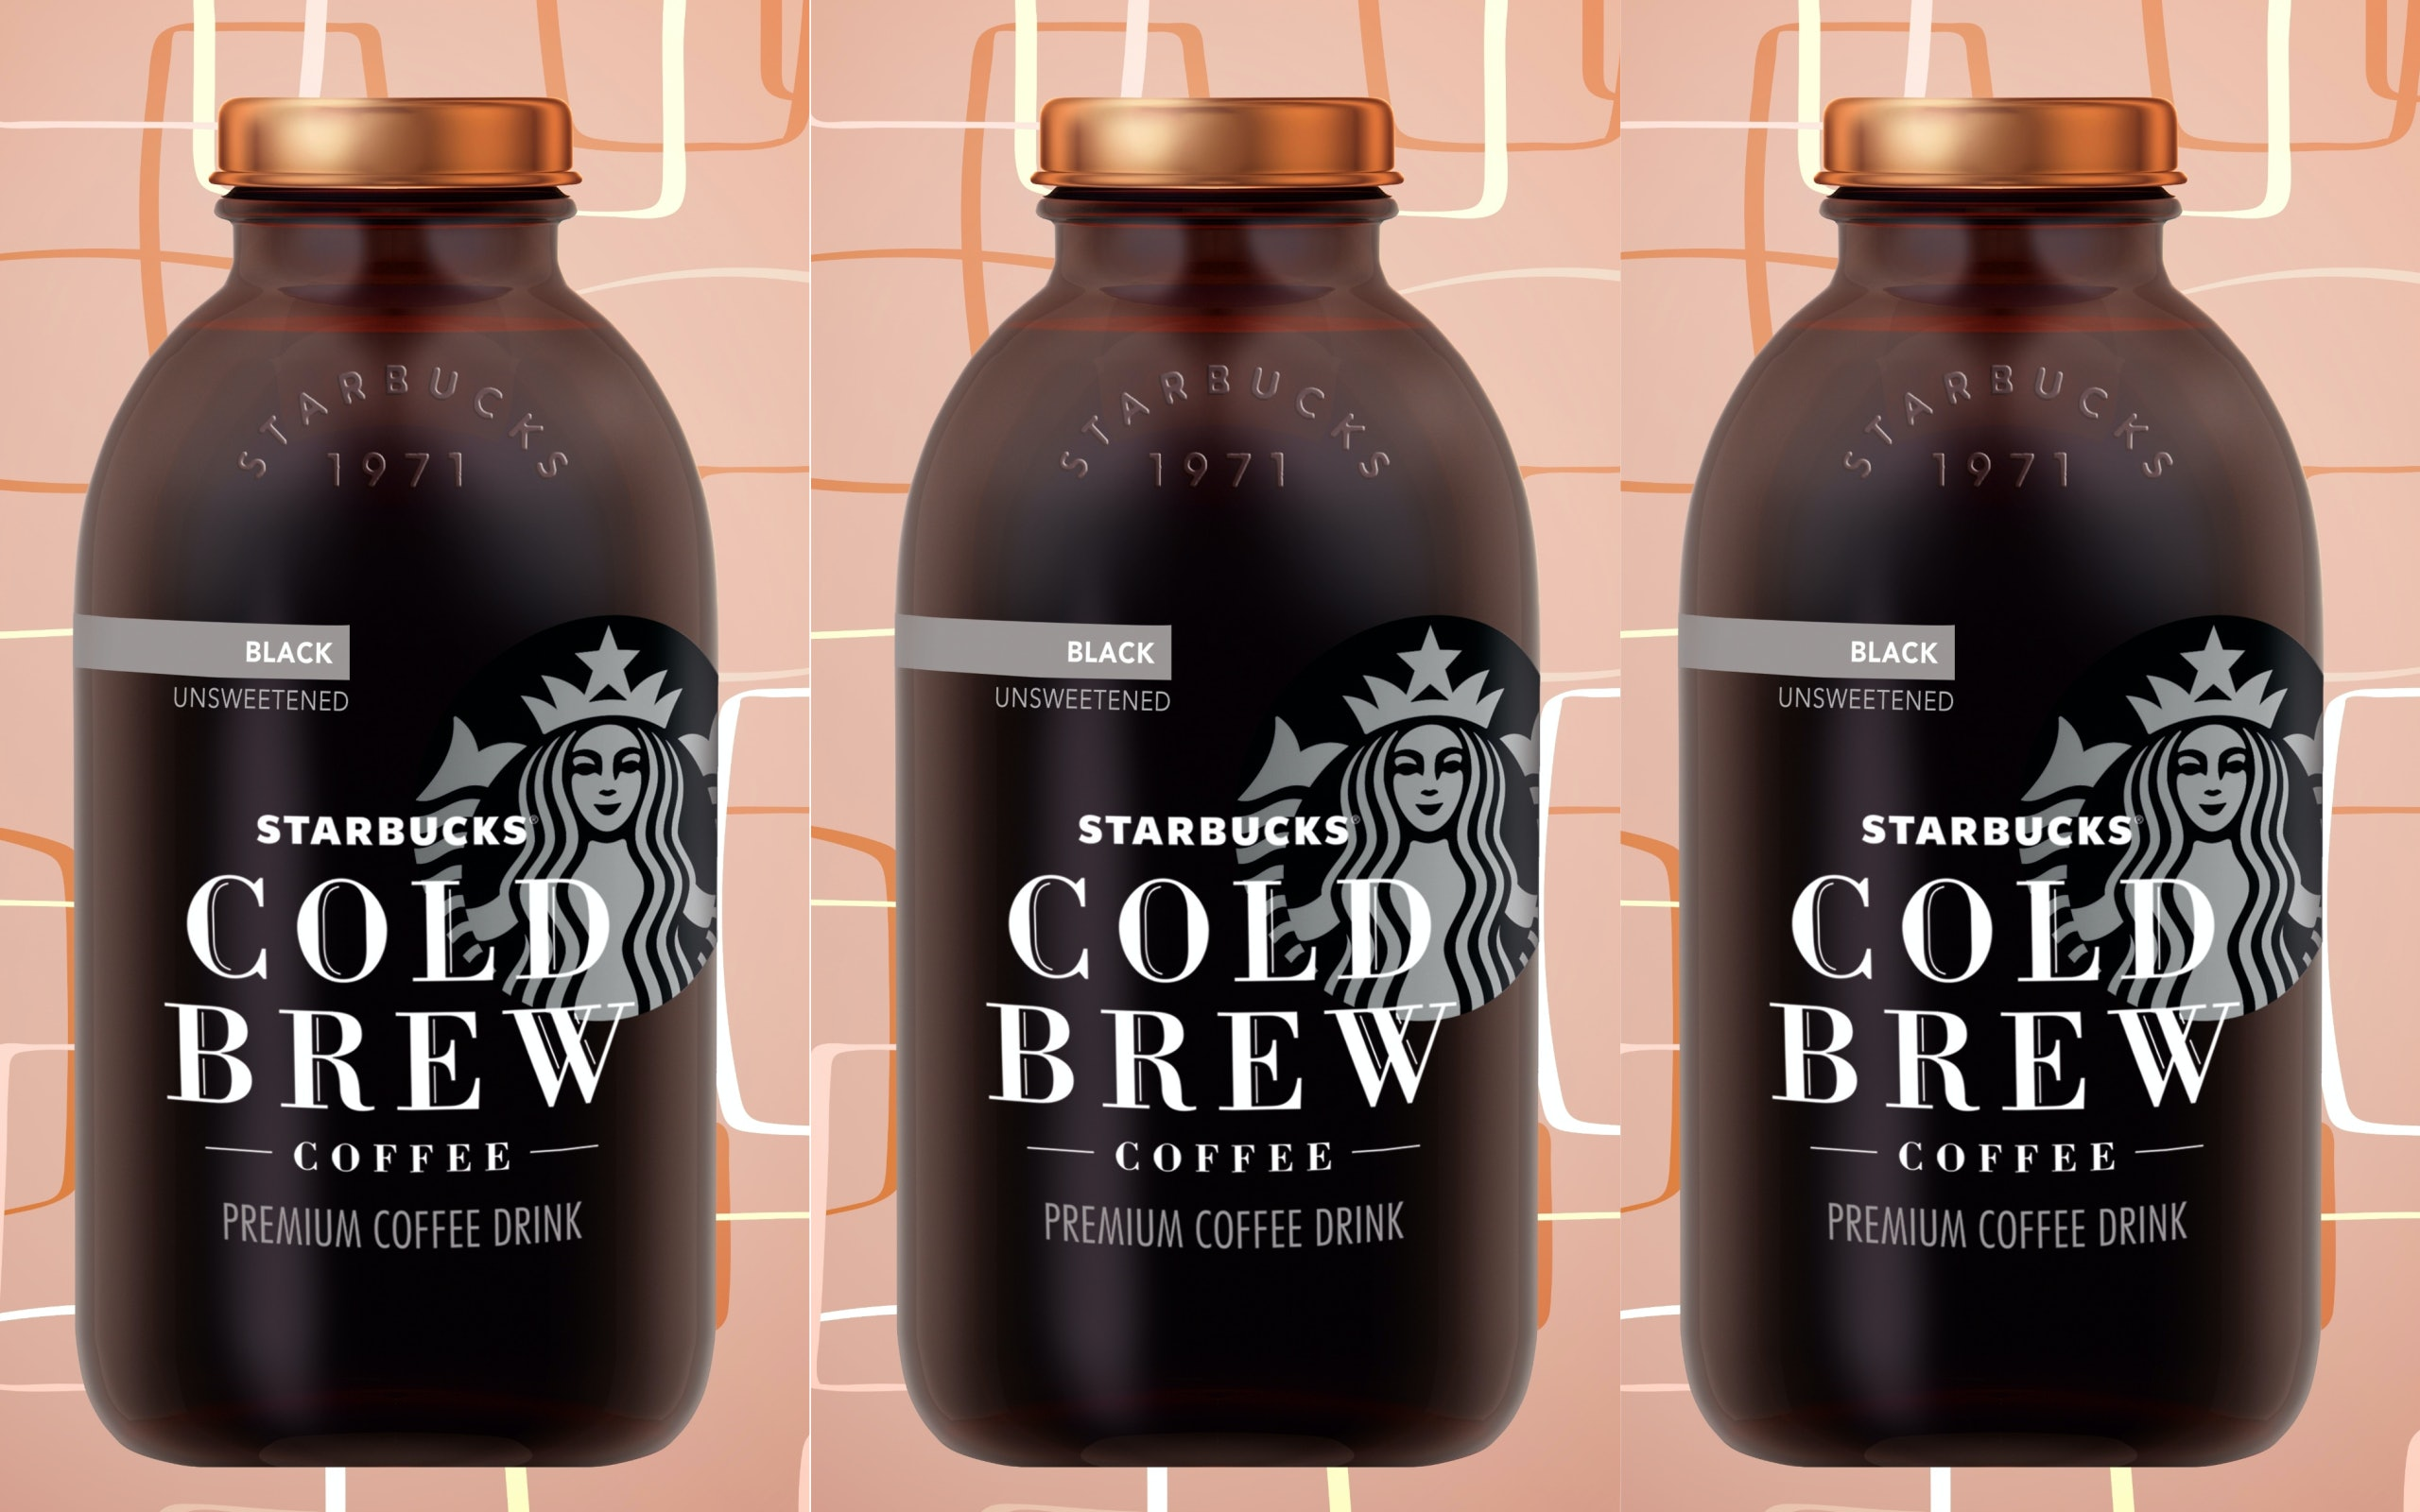 Starbucks Cold Brew Bottles Are Available In Grocery Stores Now